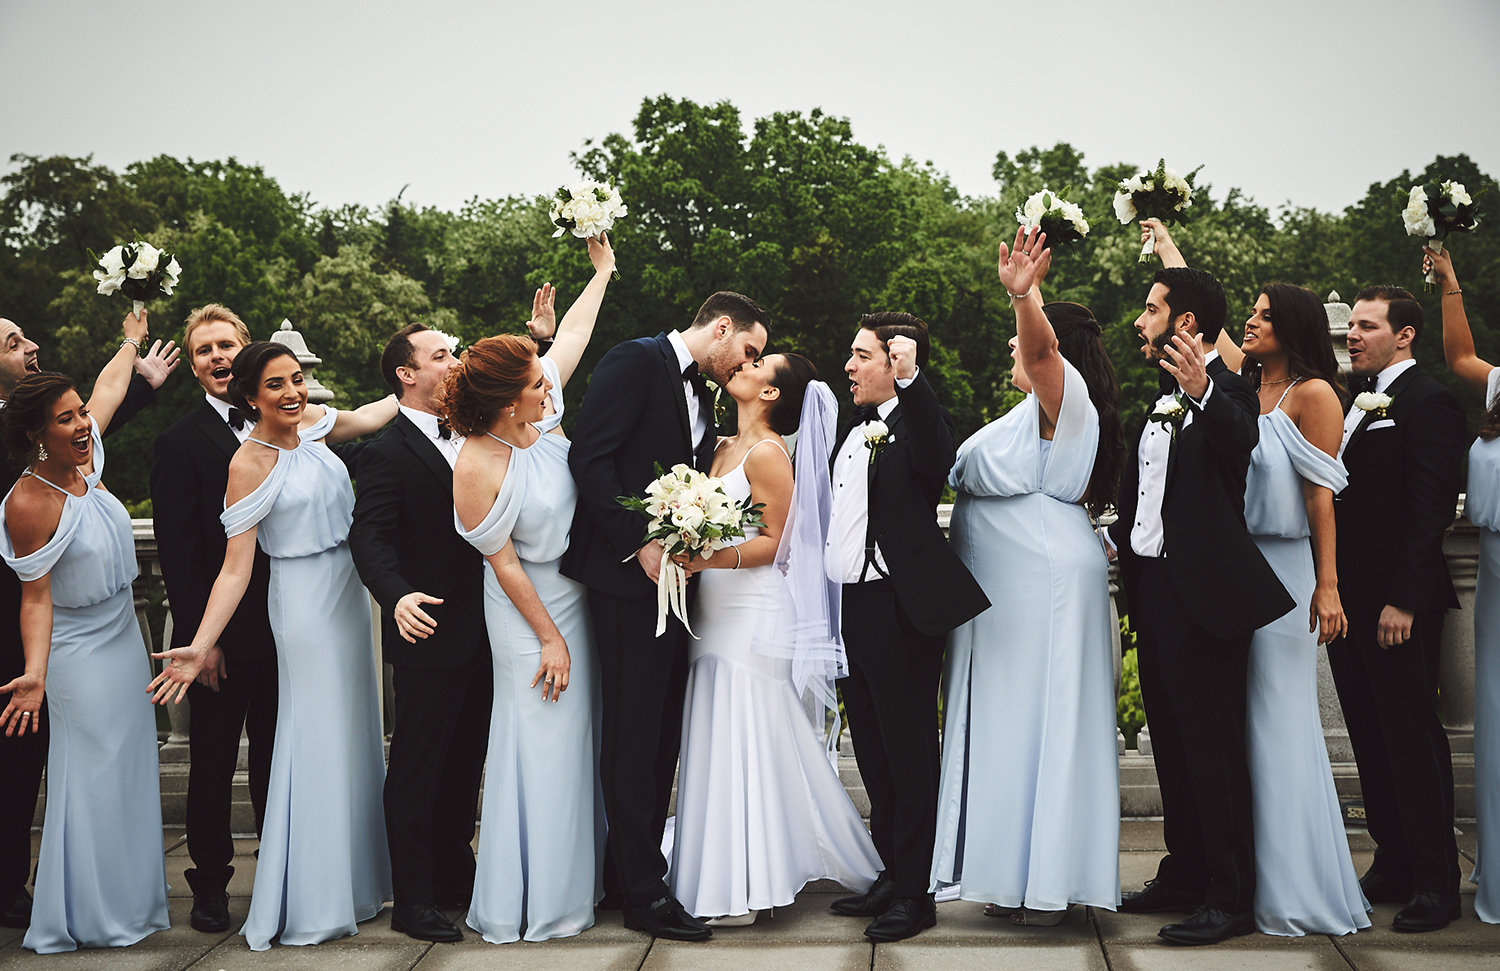 180519_PalaceatSomersetParkWeddingPhotography_NJWeddingPhotographer_By_BriJohnsonWeddings_0067.jpg